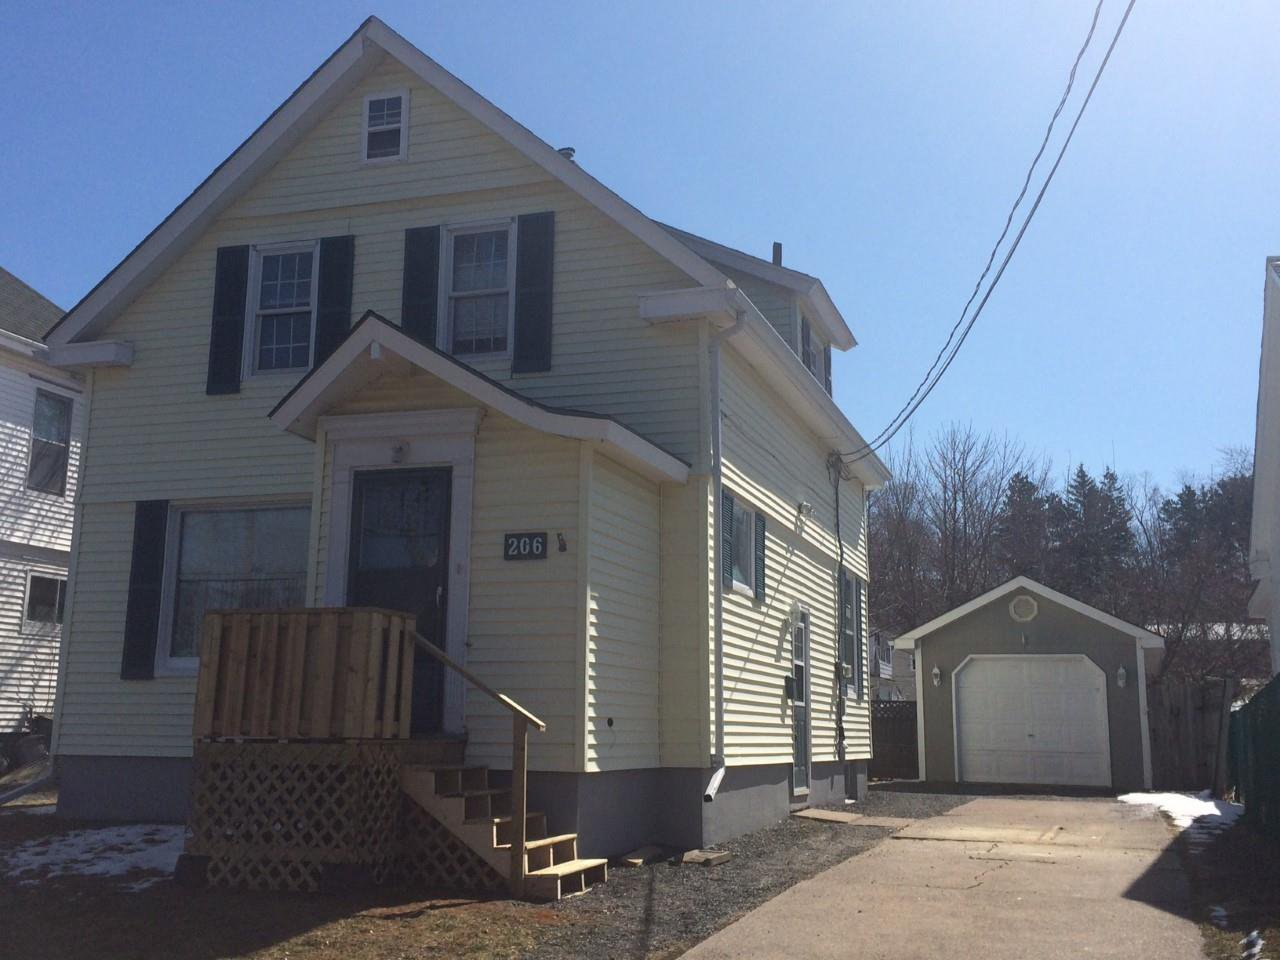 Main Photo: 206 Albert Street in New Glasgow: 106-New Glasgow, Stellarton Residential for sale (Northern Region)  : MLS®# 202006666